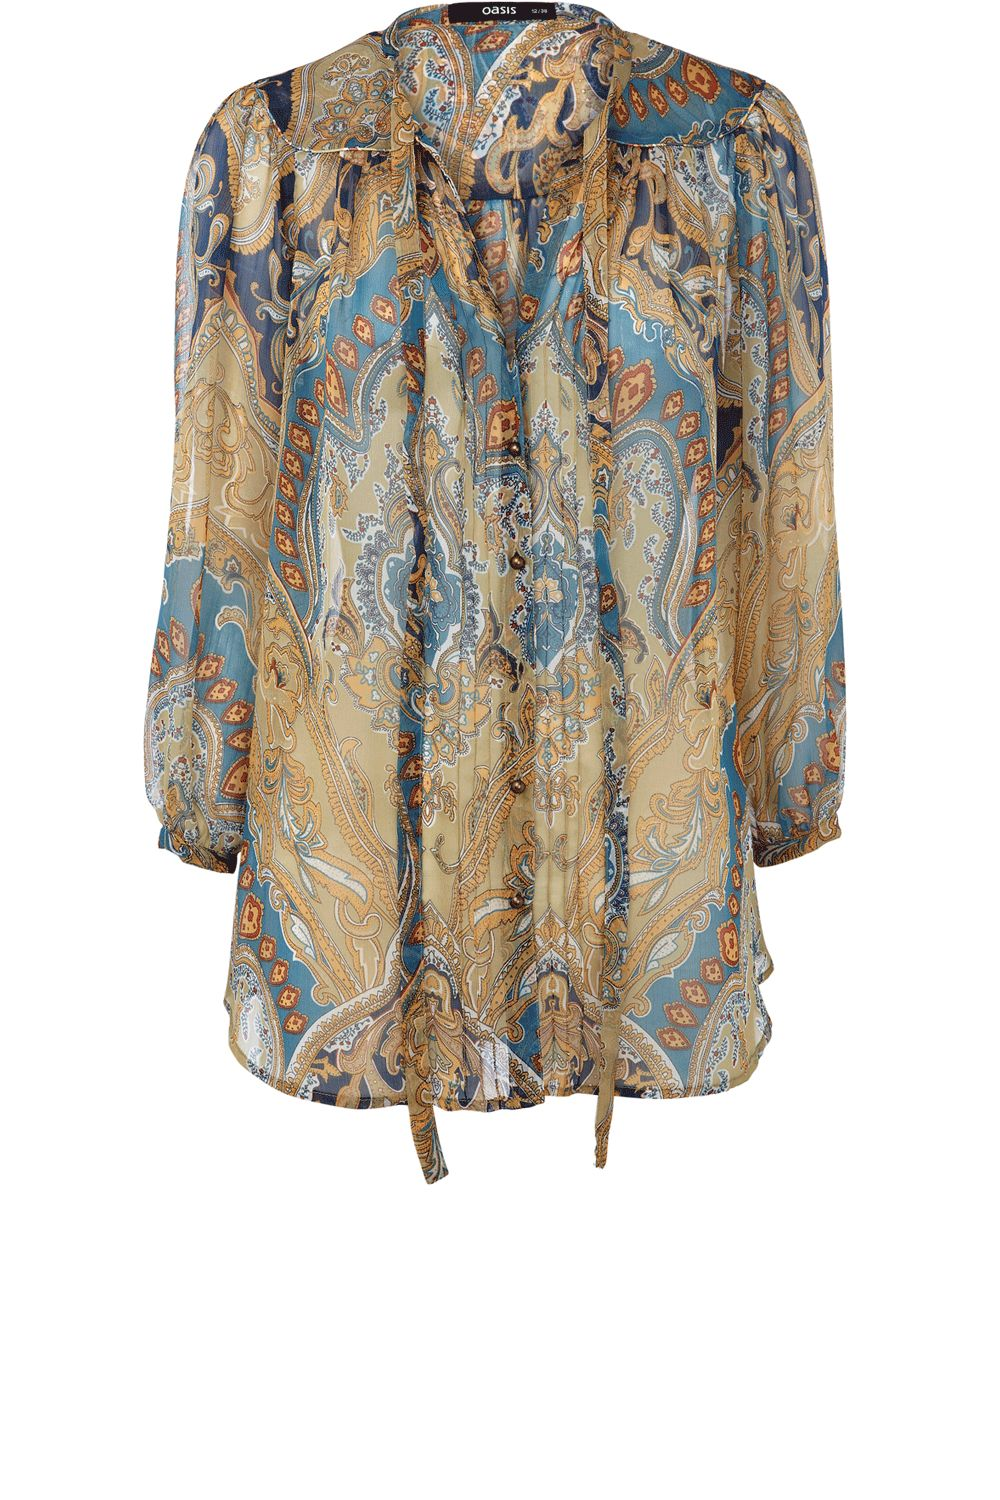 Oasis Paisley blouse - Multi-Coloured product image